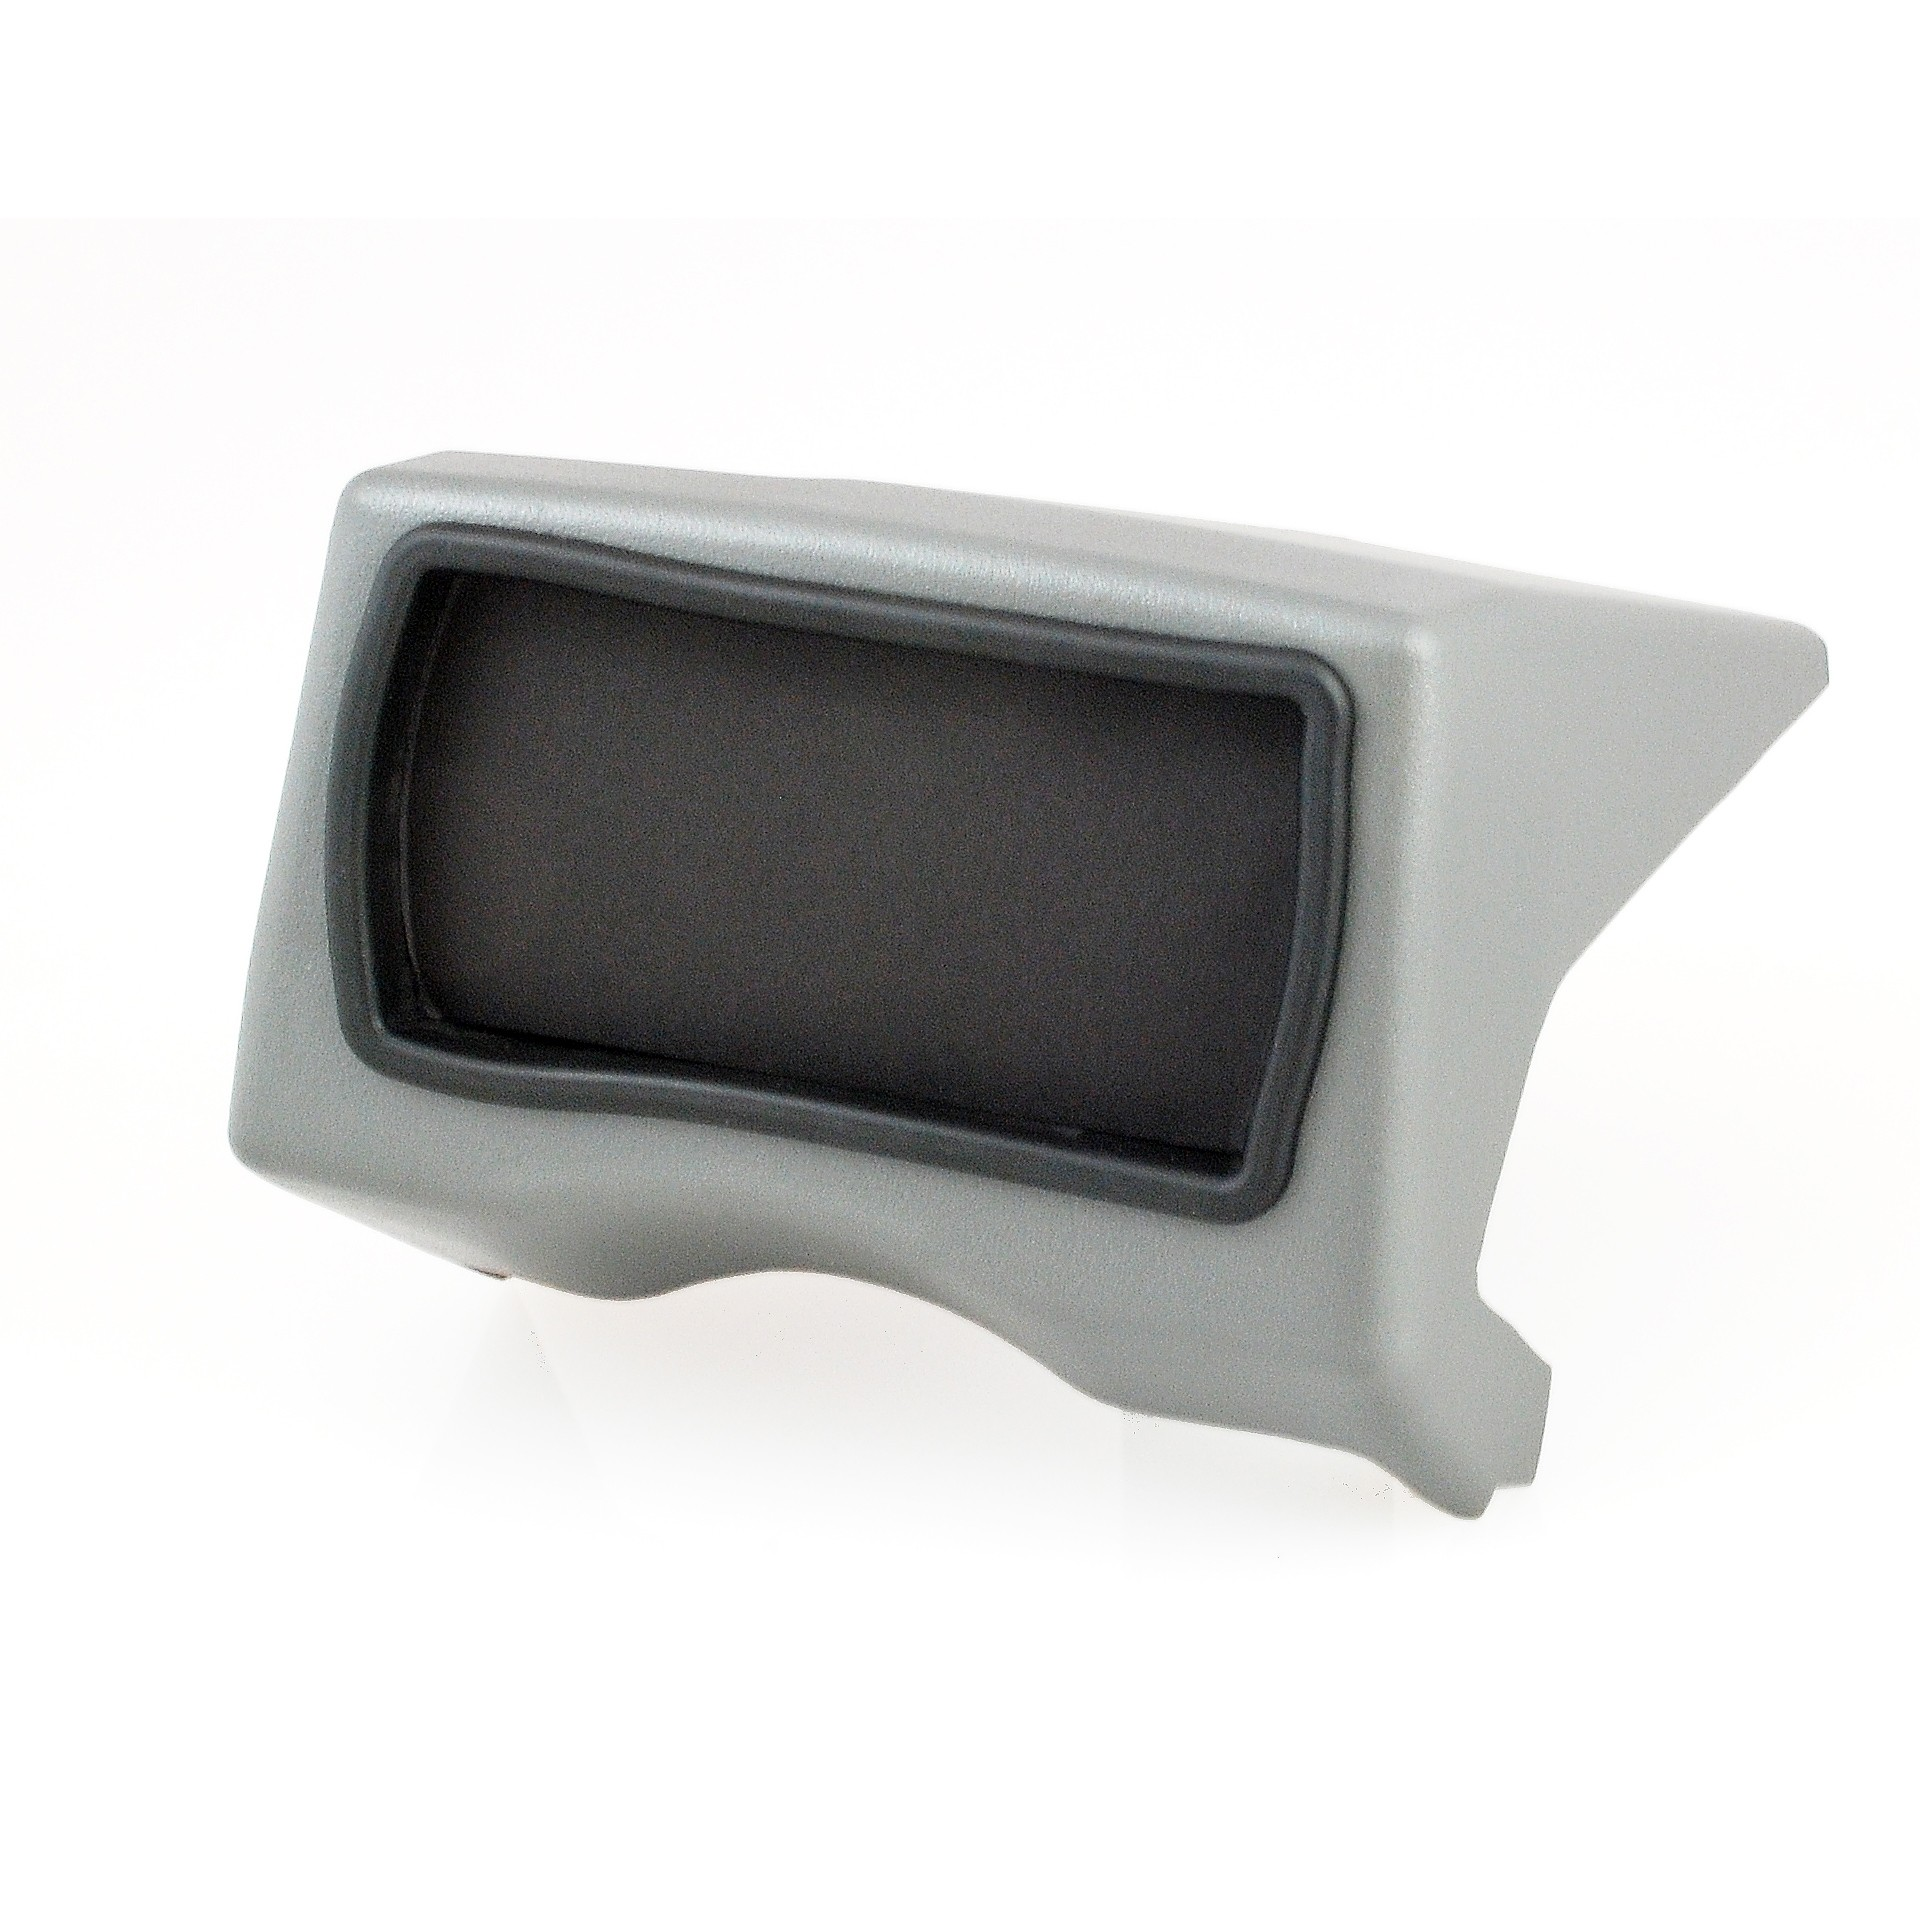 2008-2010 FORD 6.4L, 2011-2012 FORD 6.7L DASH POD (Comes with T2 adaptor)